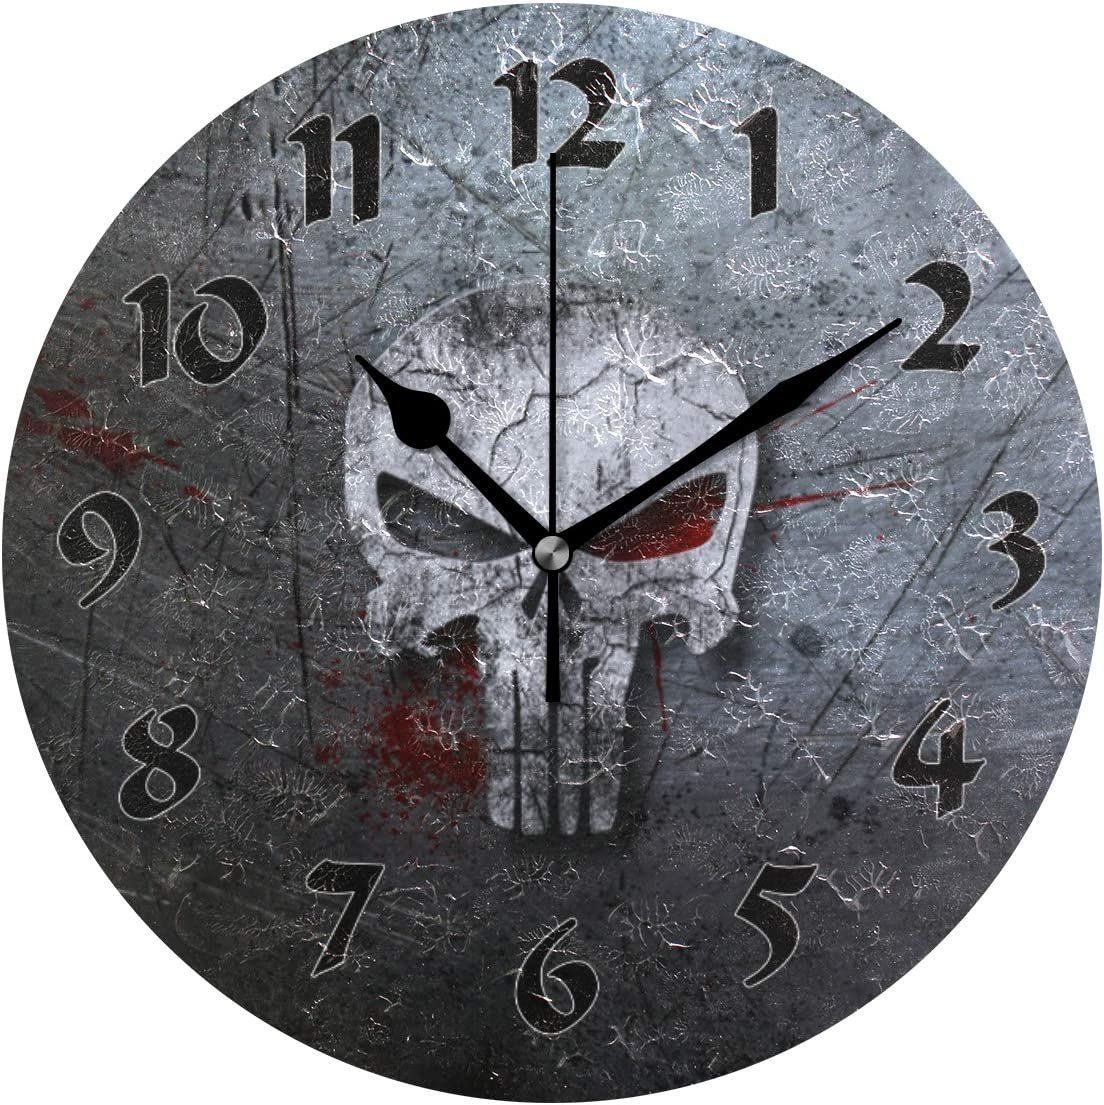 Cute Arabic Numeral Design Skull Non Ticking Round Wall Clock Battery Operated Acrylic Oil Painting Home Office School Decor Dual Use Art Clock 9.45 Inch